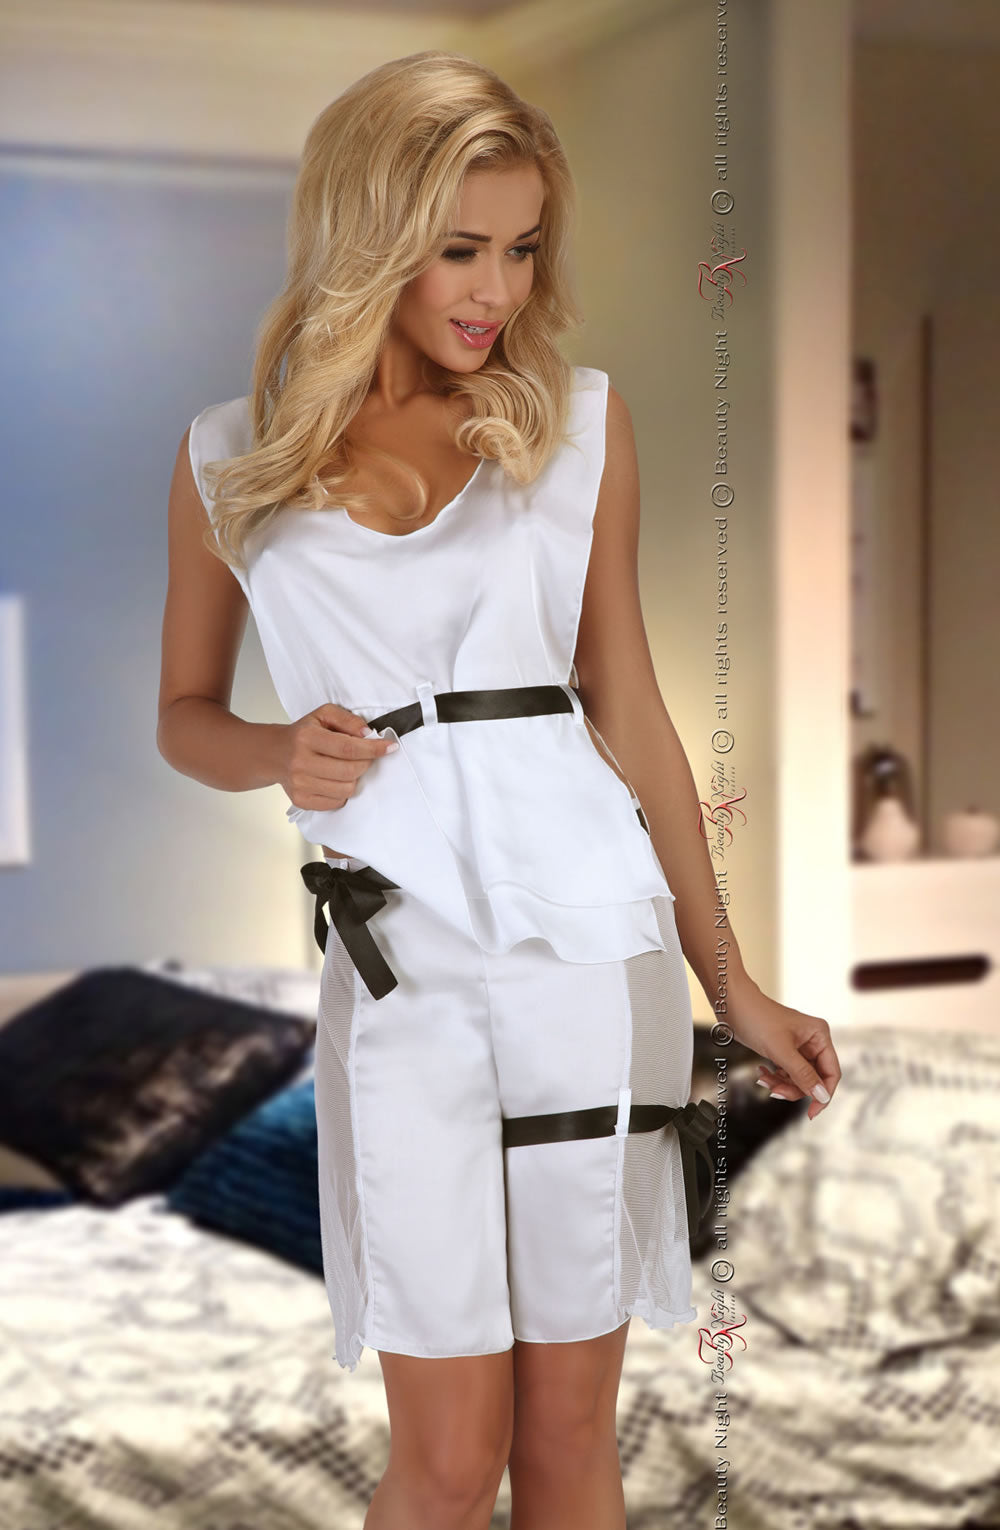 Beauty Night Beauty Night Flavia  White  All Offers, Beauty Night, NEWLY-IMPORTED, Nightwear, SALE, Short Sets, £19.99 DEALS - So Luxe Lingerie